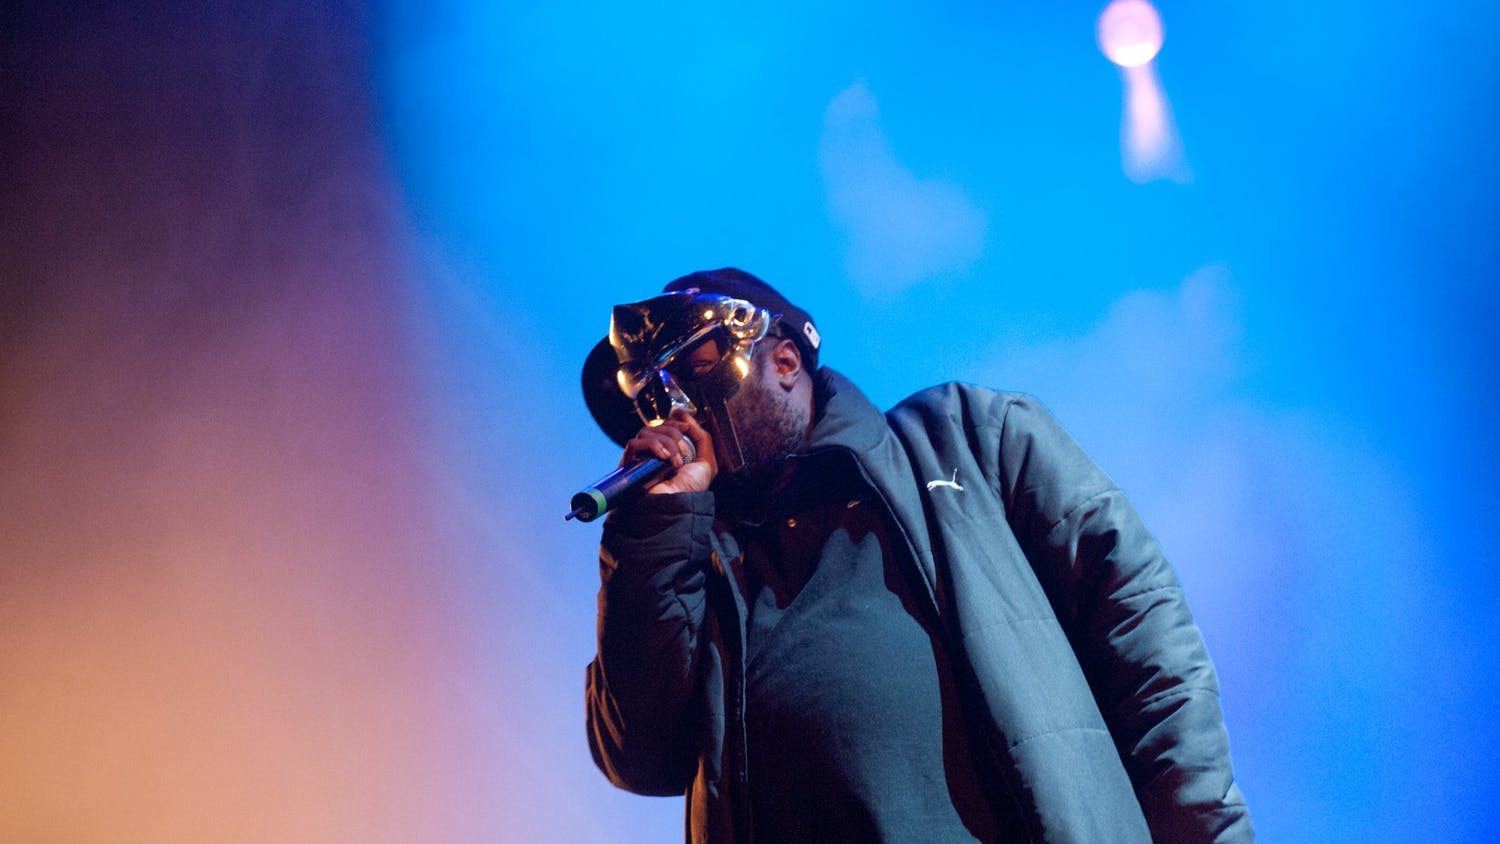 MF DOOM essentially created audio comics, and was able to bring listeners into his world.